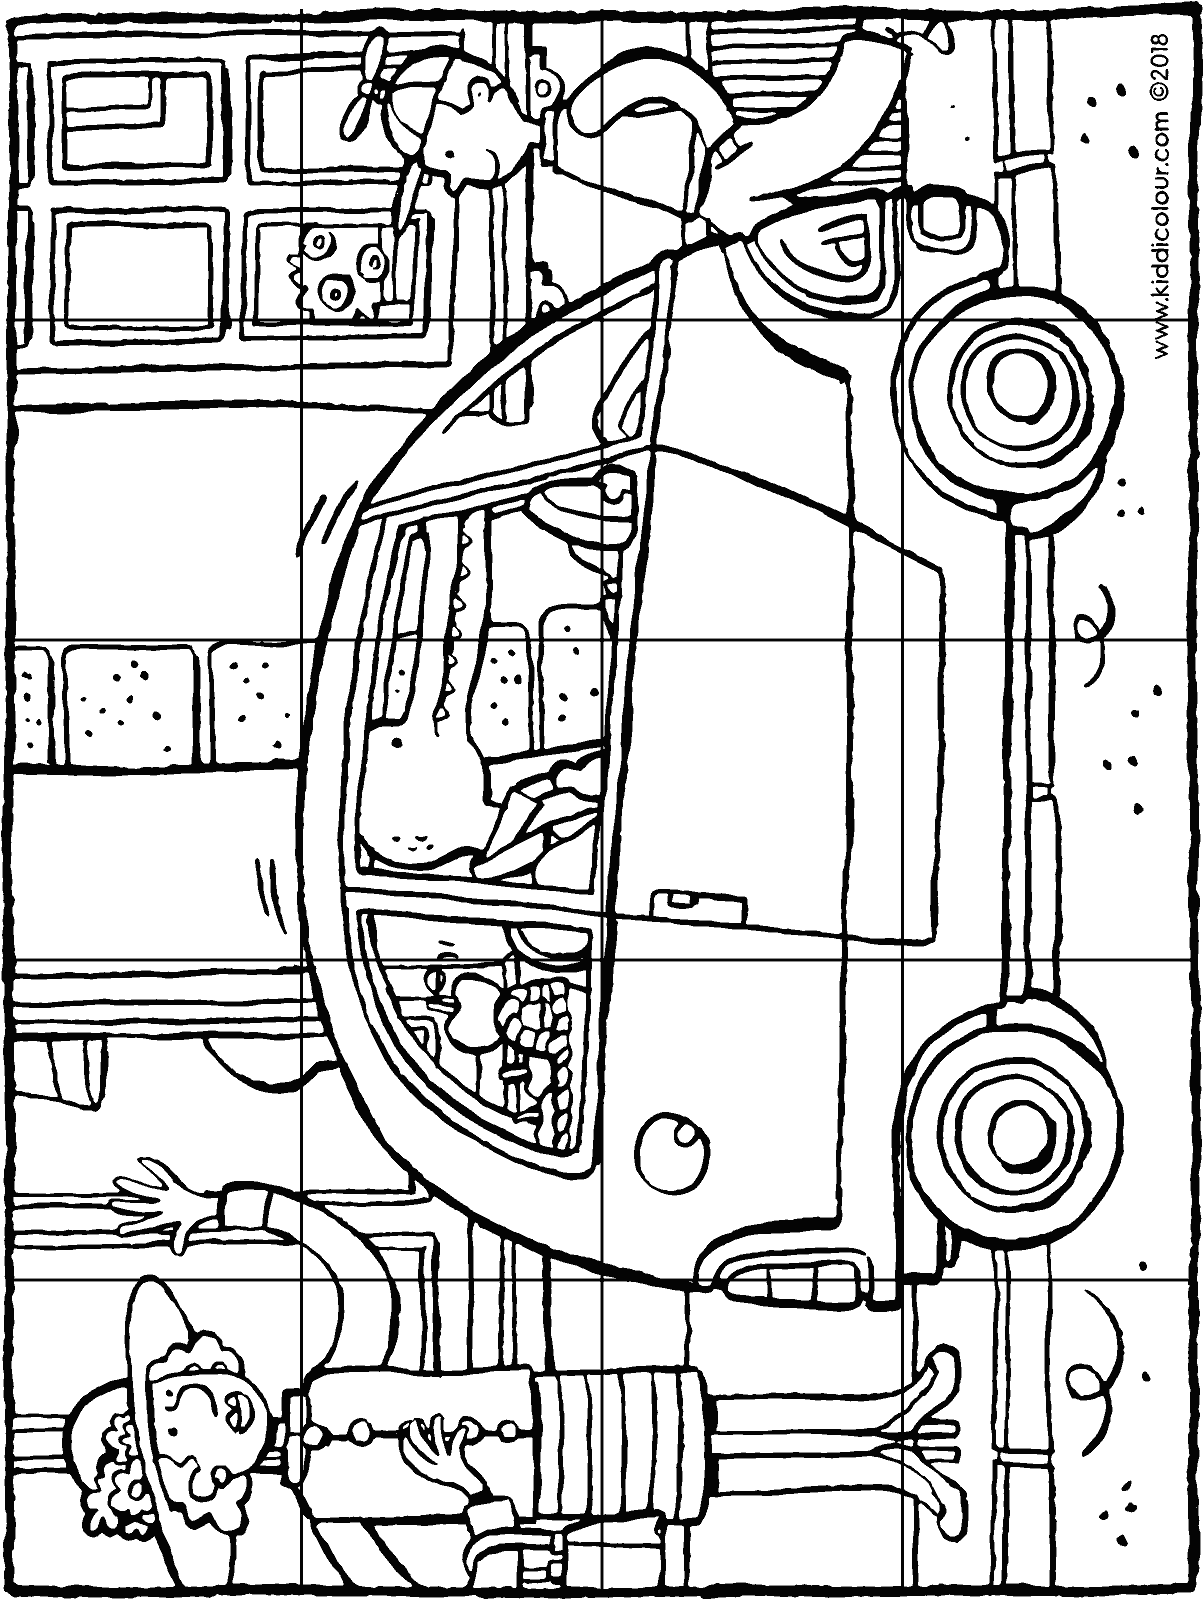 a small city car 20-piece puzzle colouring page drawing picture 01H